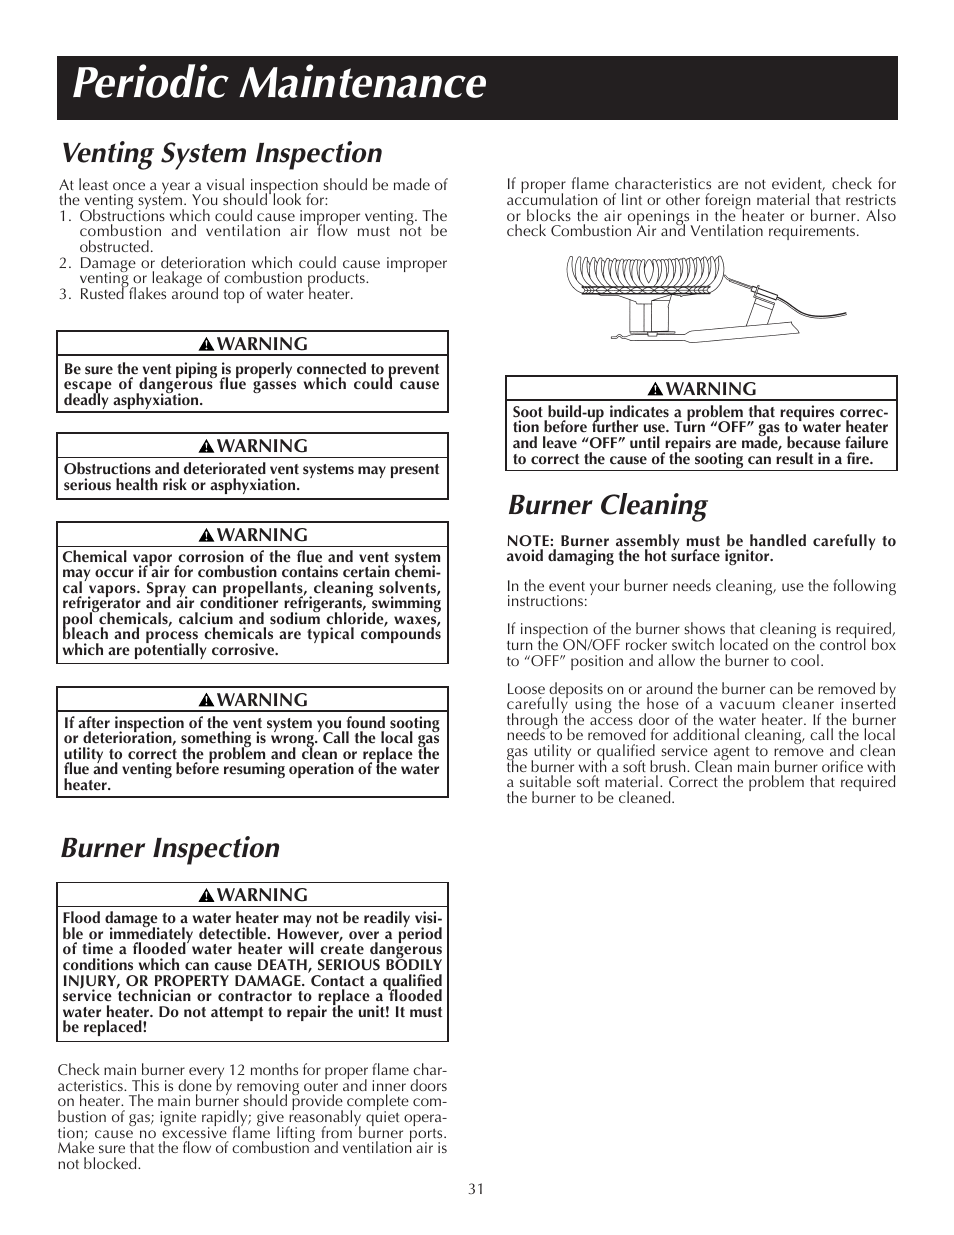 Periodic maintenance, Venting system inspection, Burner inspection | State  PR6 75 XRVIT User Manual | Page 31 / 40